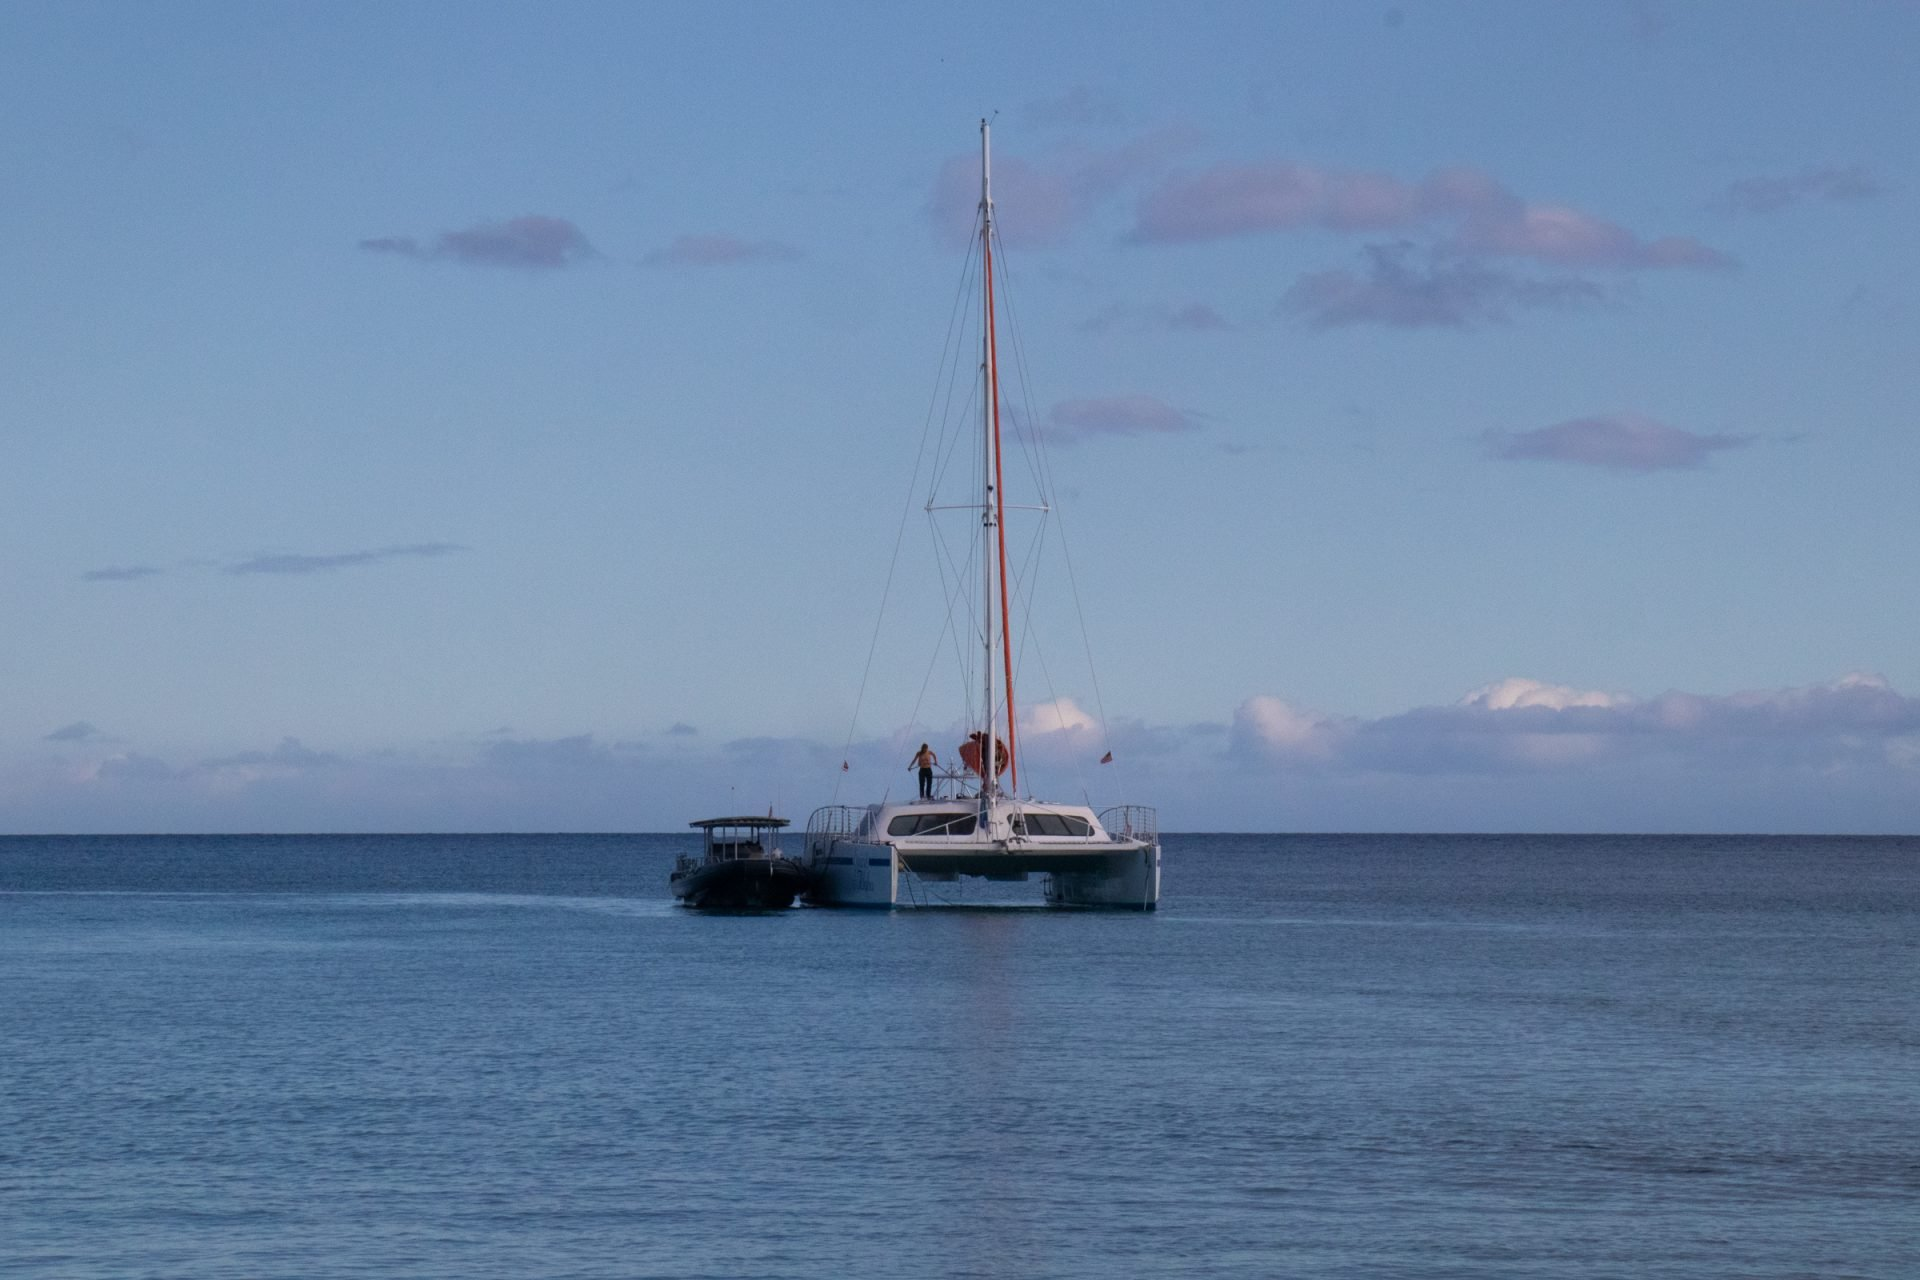 Small Boat Next To Catamaran On Water